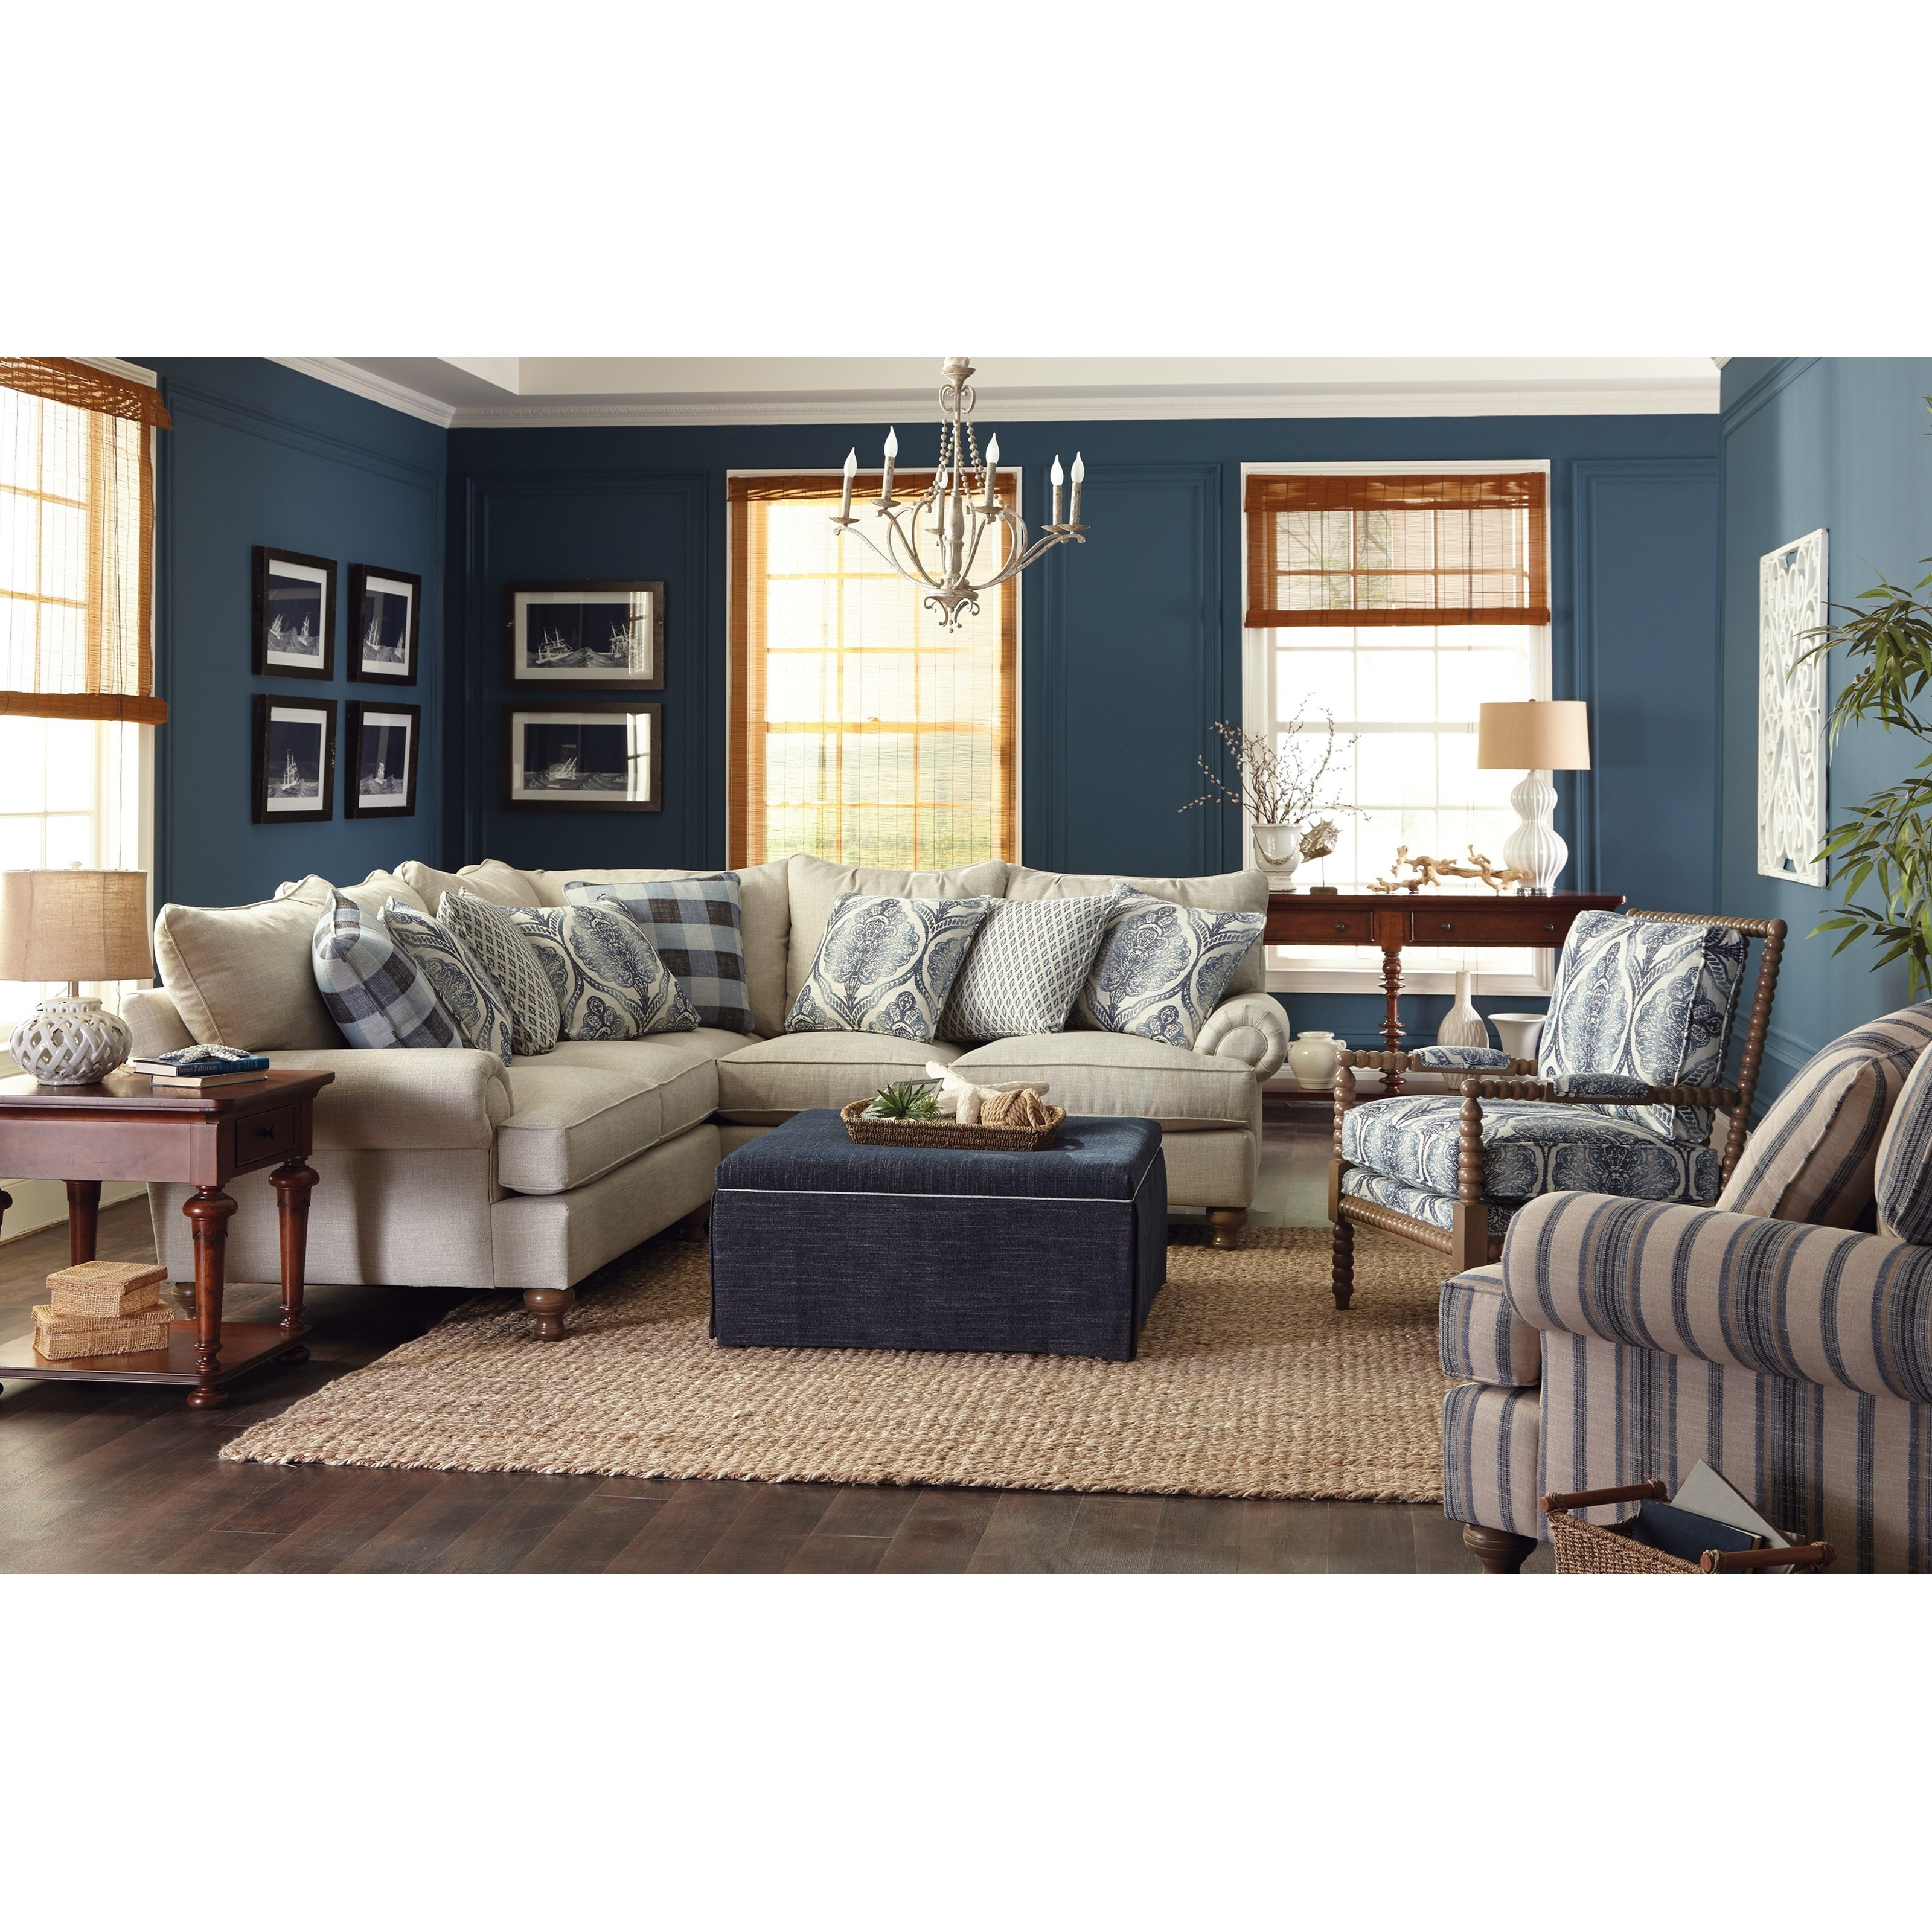 Paula Deen by Craftmaster P711700 2Piece Sectional Sofa with Rolled Arms and Turned Feet